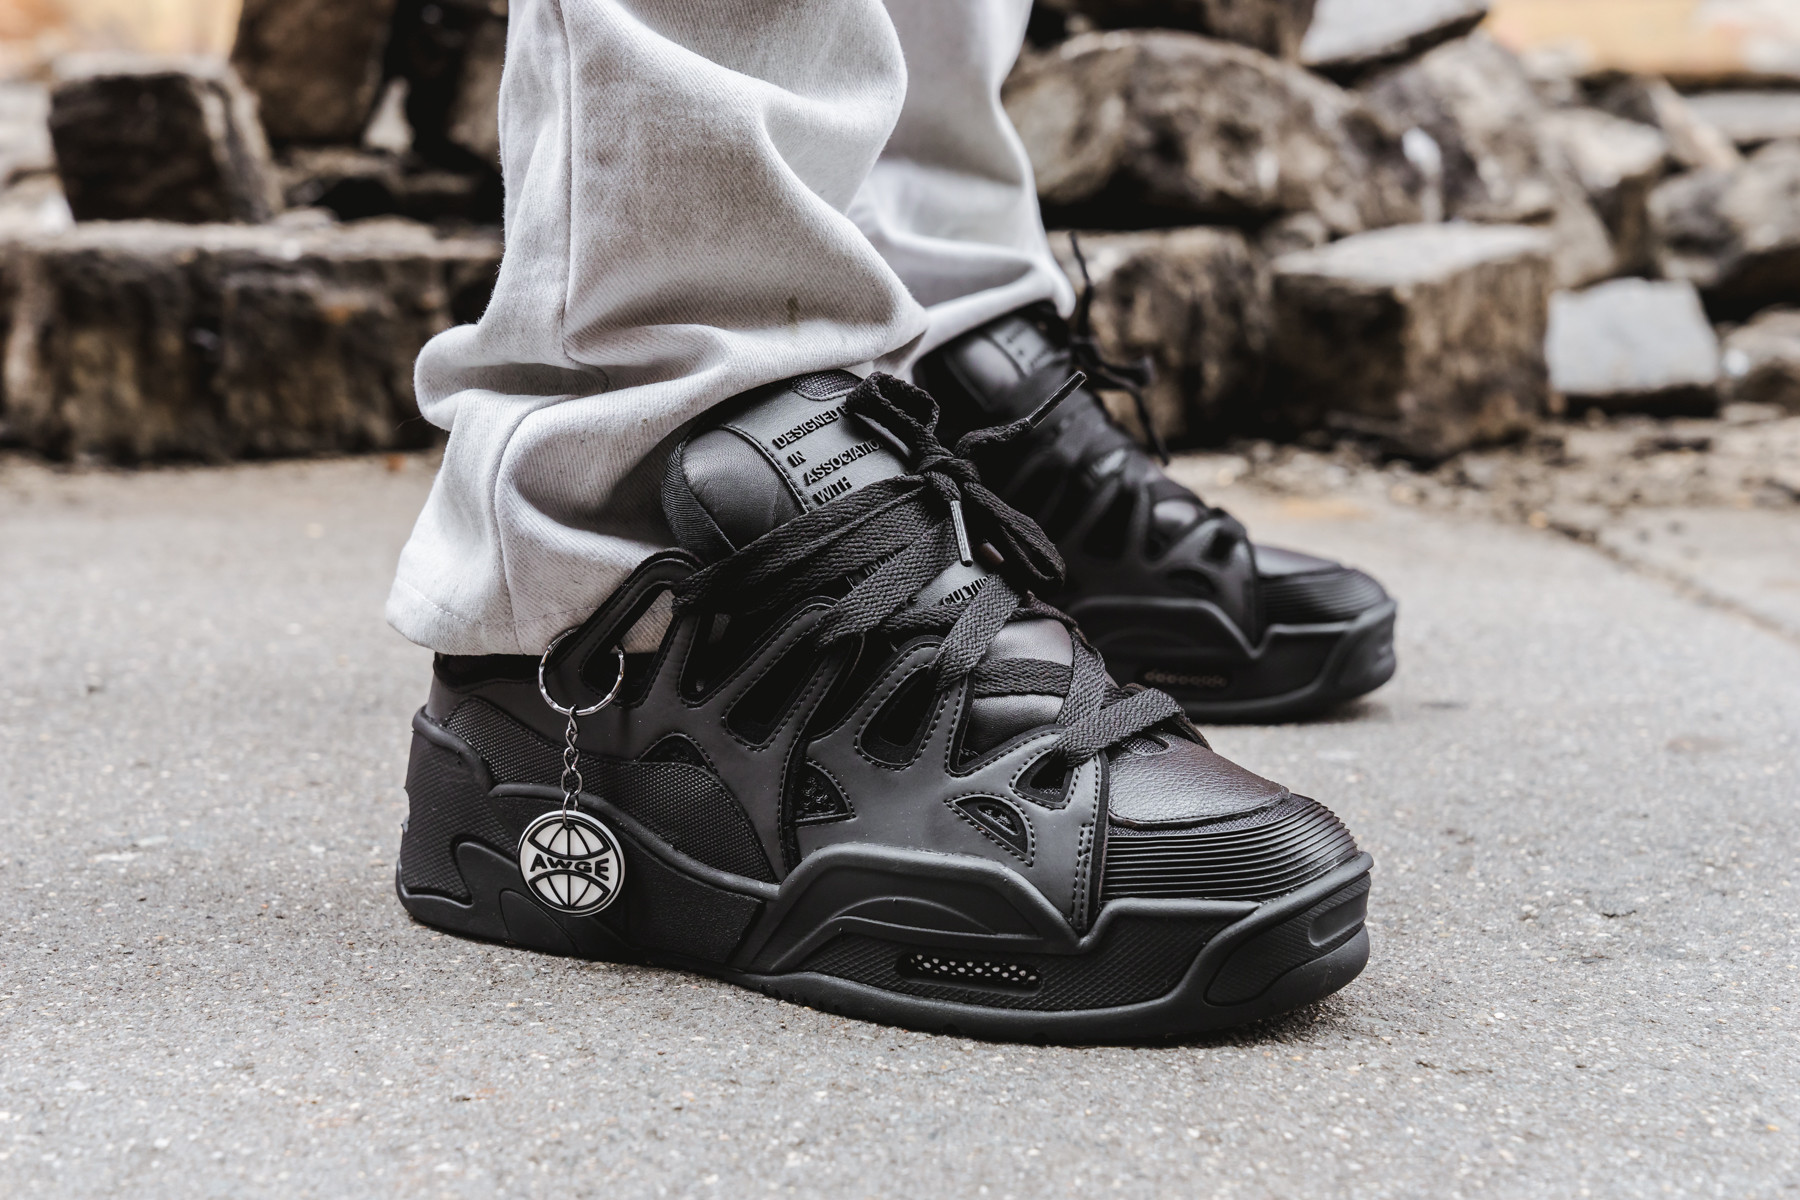 ceja Soberano vestir  An On Foot Look At The A$AP Rocky x Under Armour SRLo | The Sole Supplier